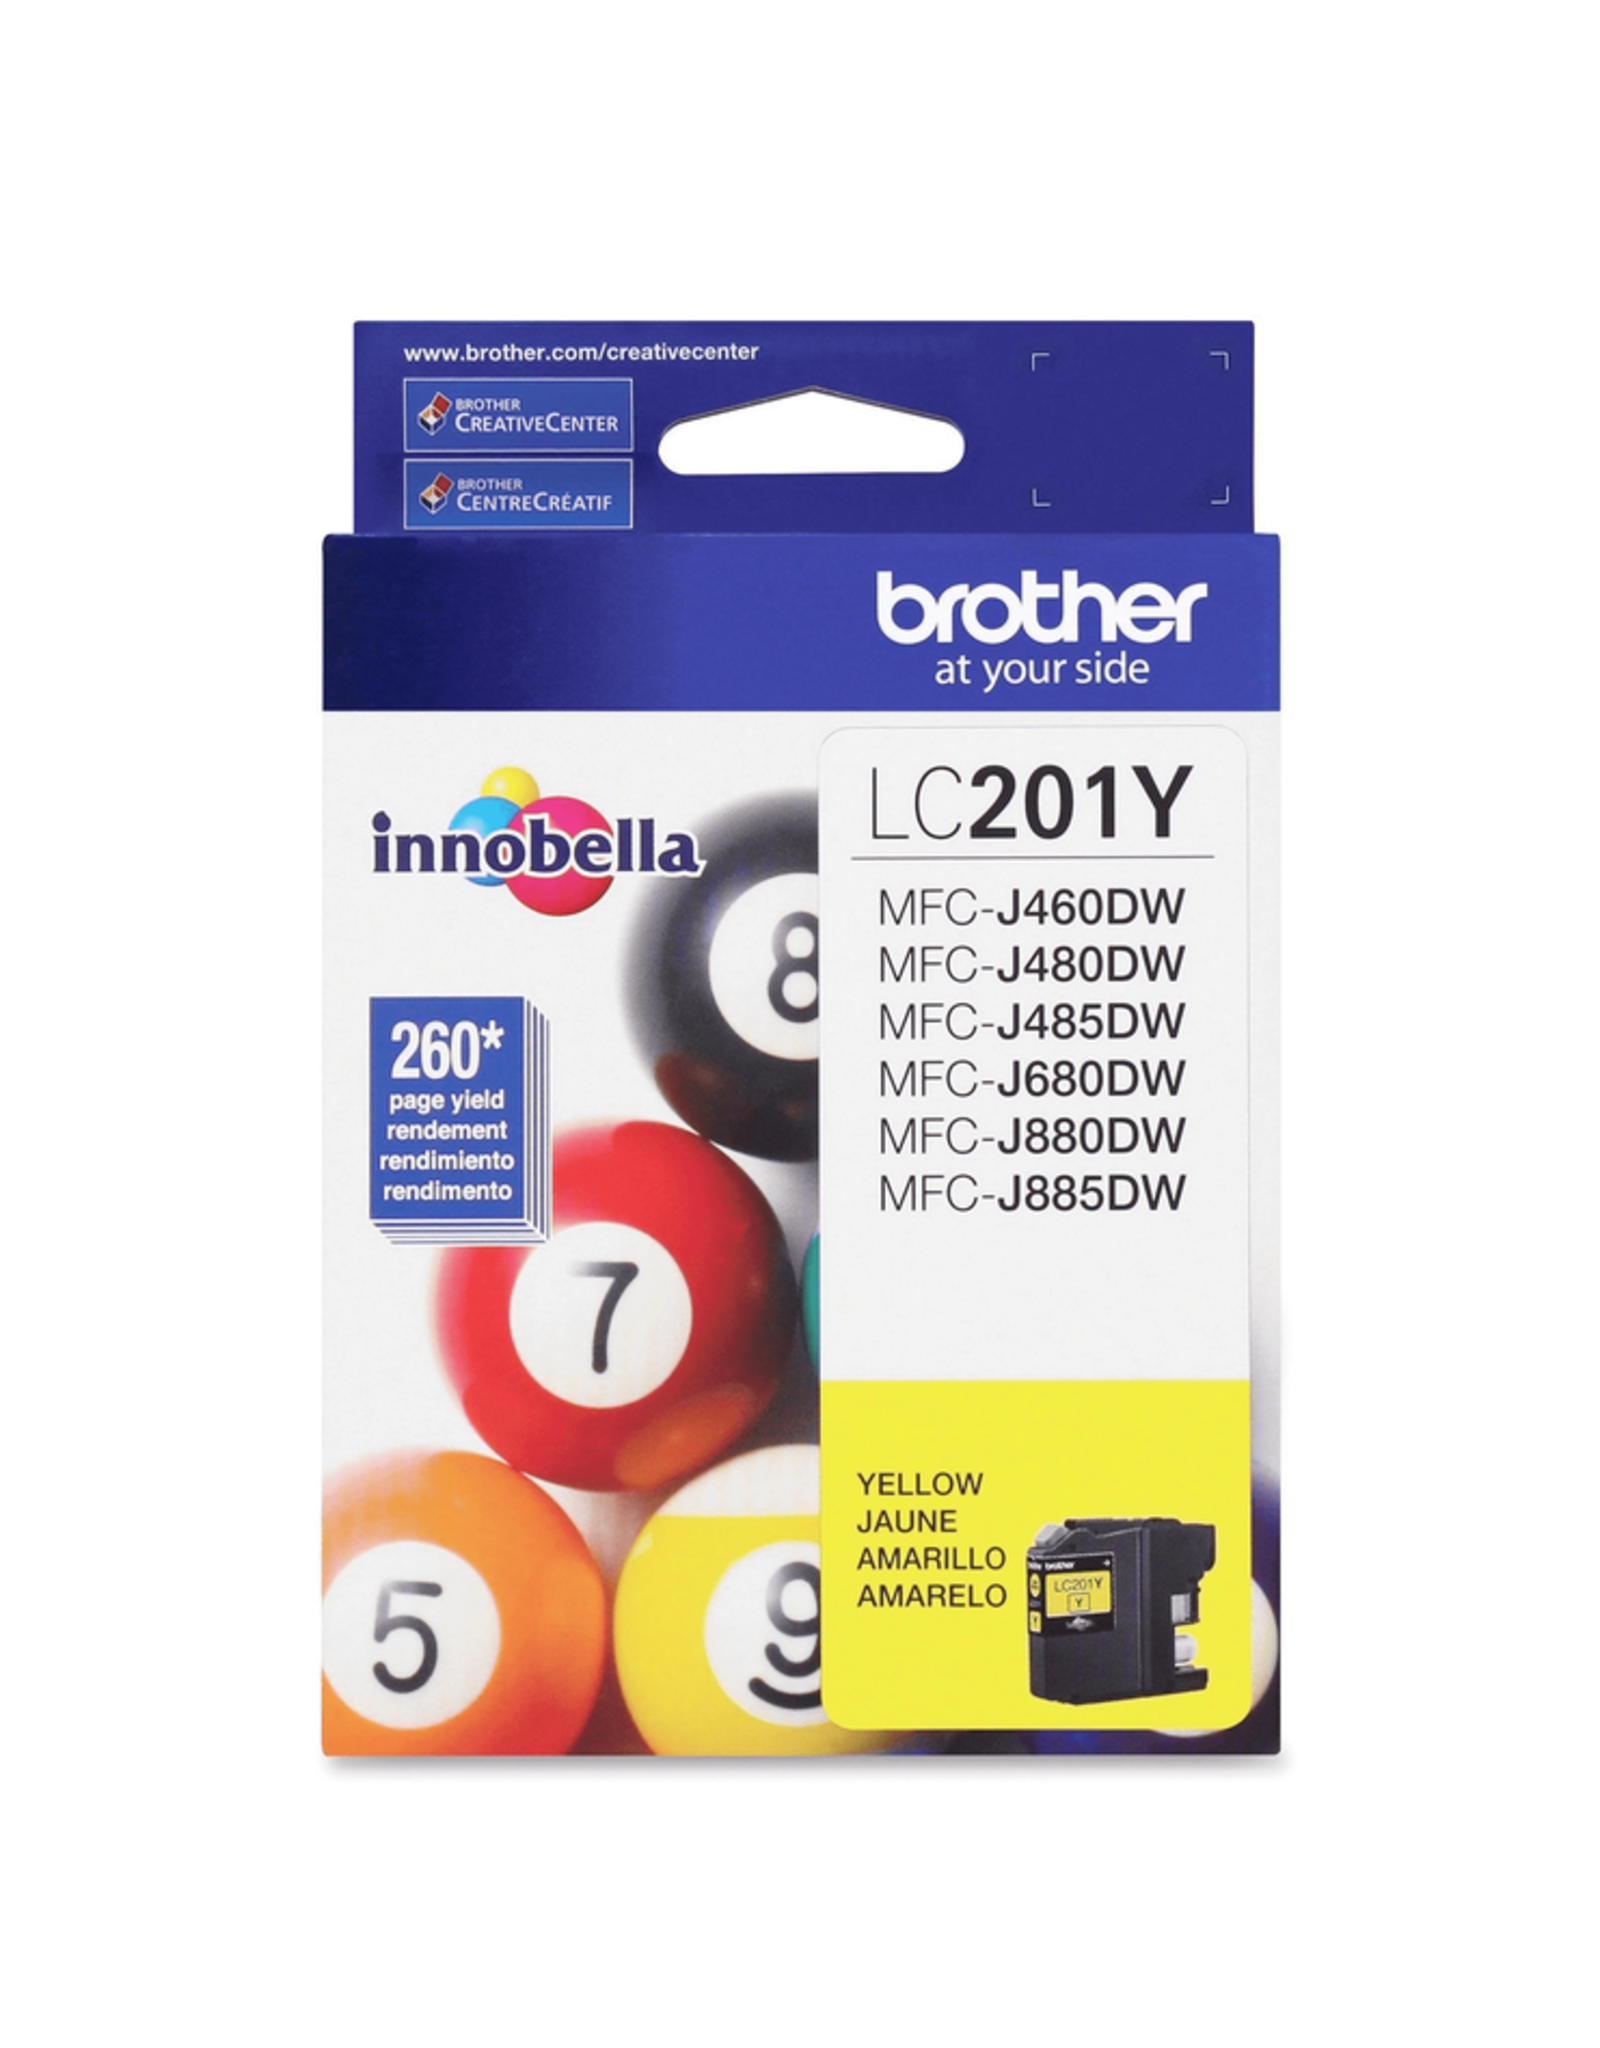 Brother INKJET CARTRIDGE-BROTHER YELLOW